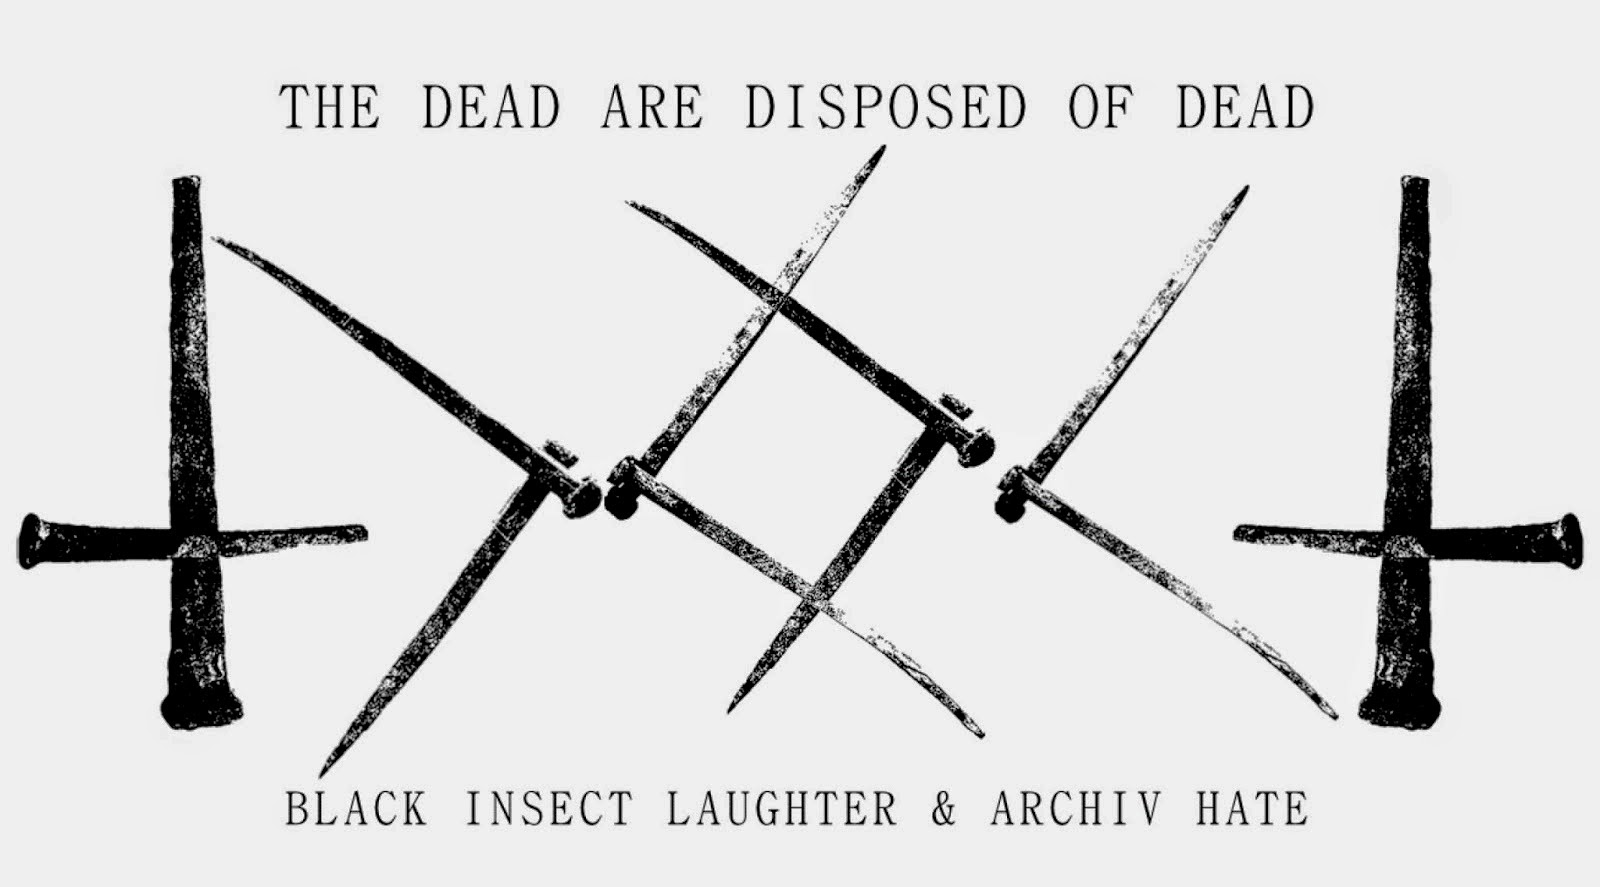 Archiv Hate / Black Insect Laughter shirt